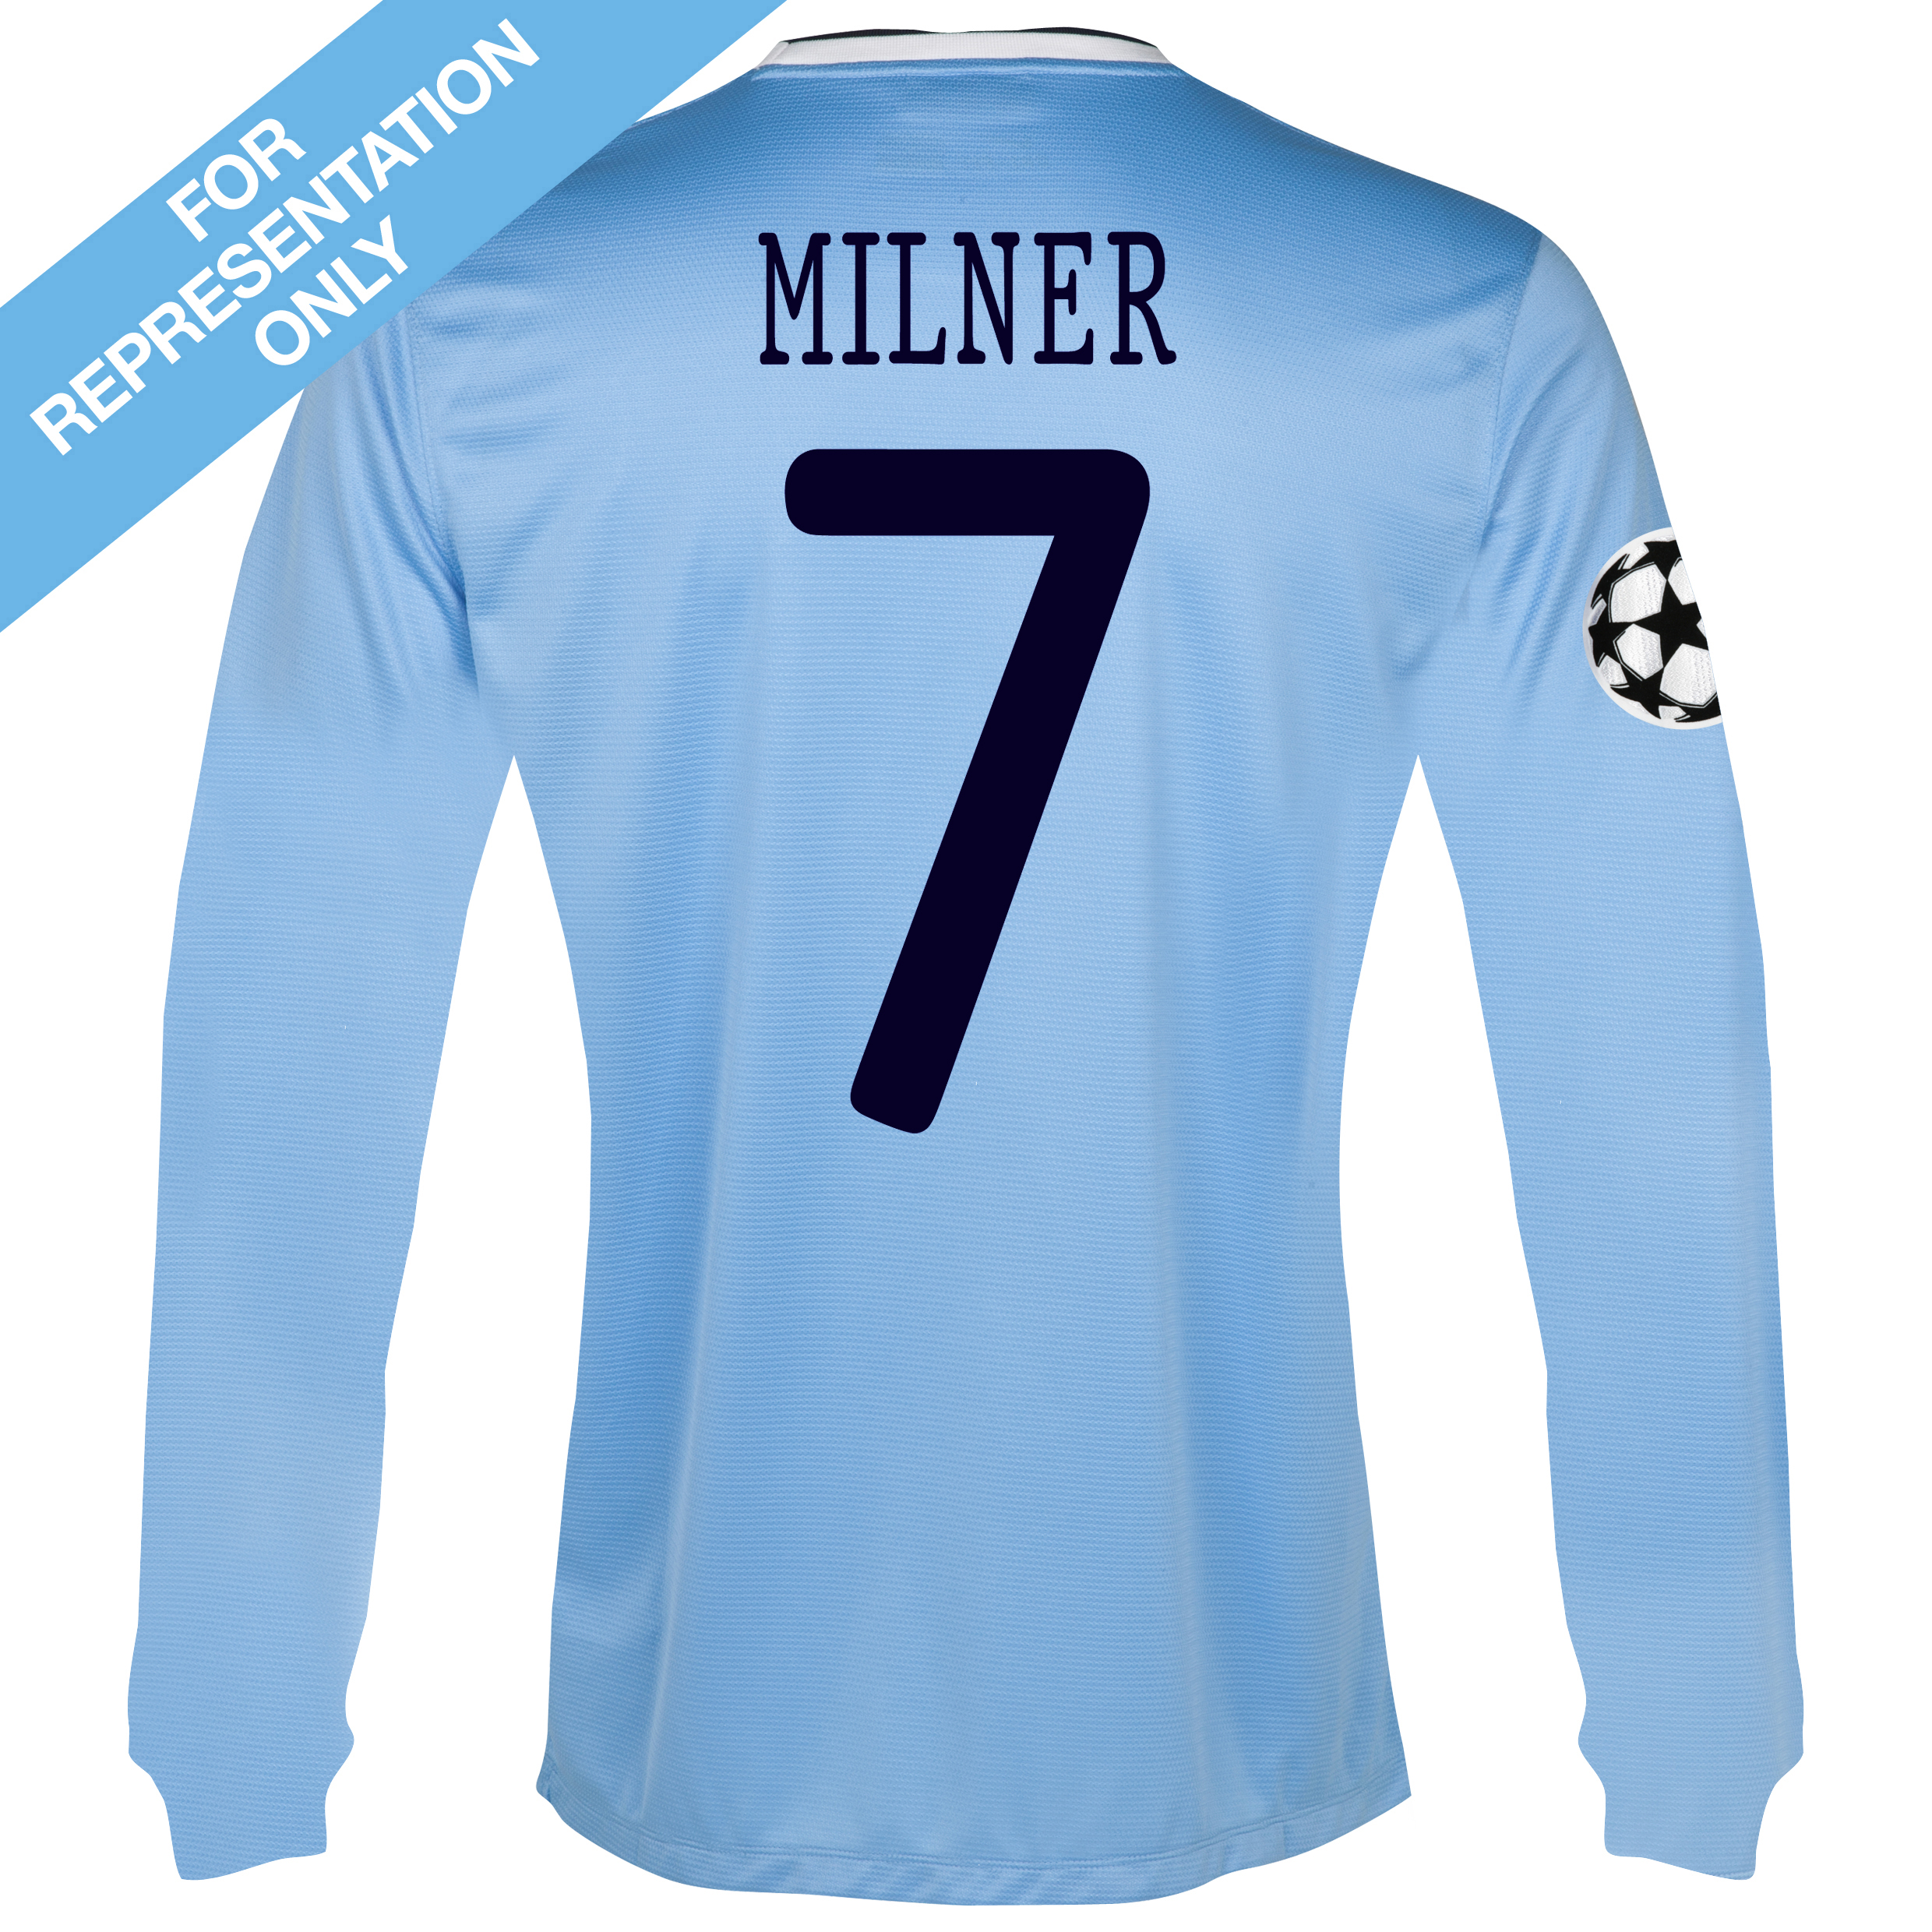 Manchester City UEFA Champions League Home Shirt 2013/14 - Long Sleeved with Milner 7 printing